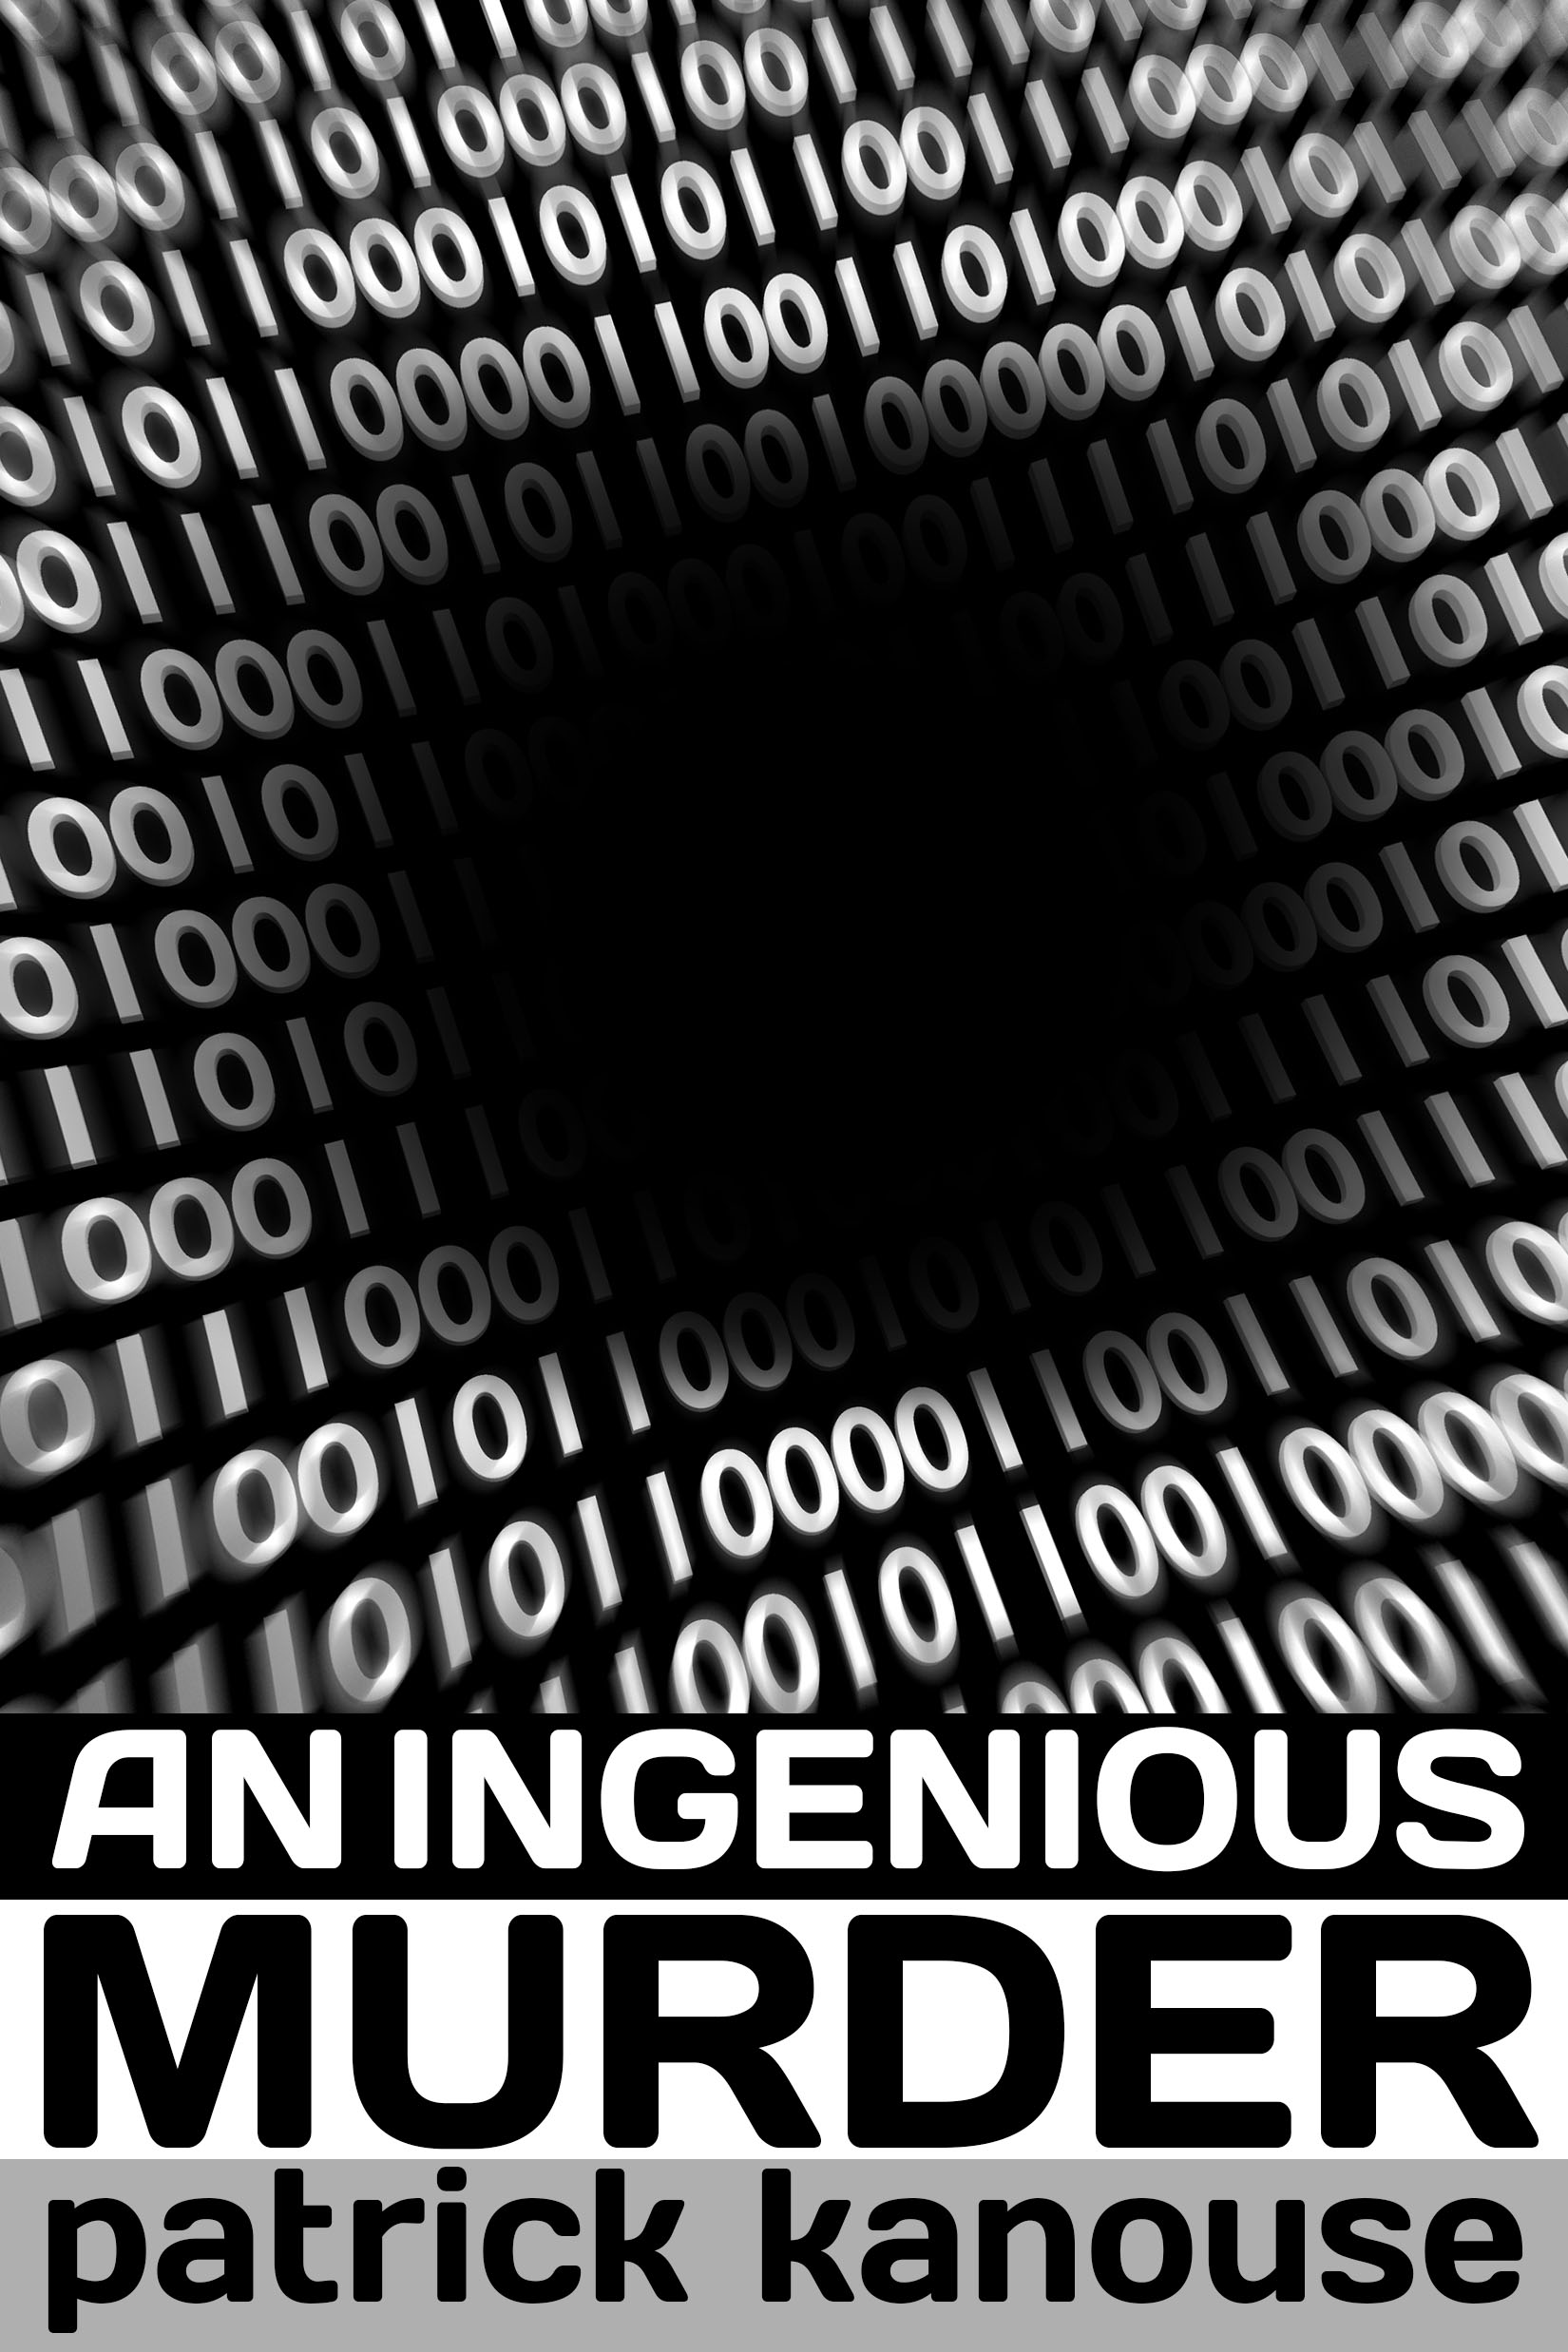 Image of cover for An Ingenius Murder below a black hole surrounded by ones and zeros.